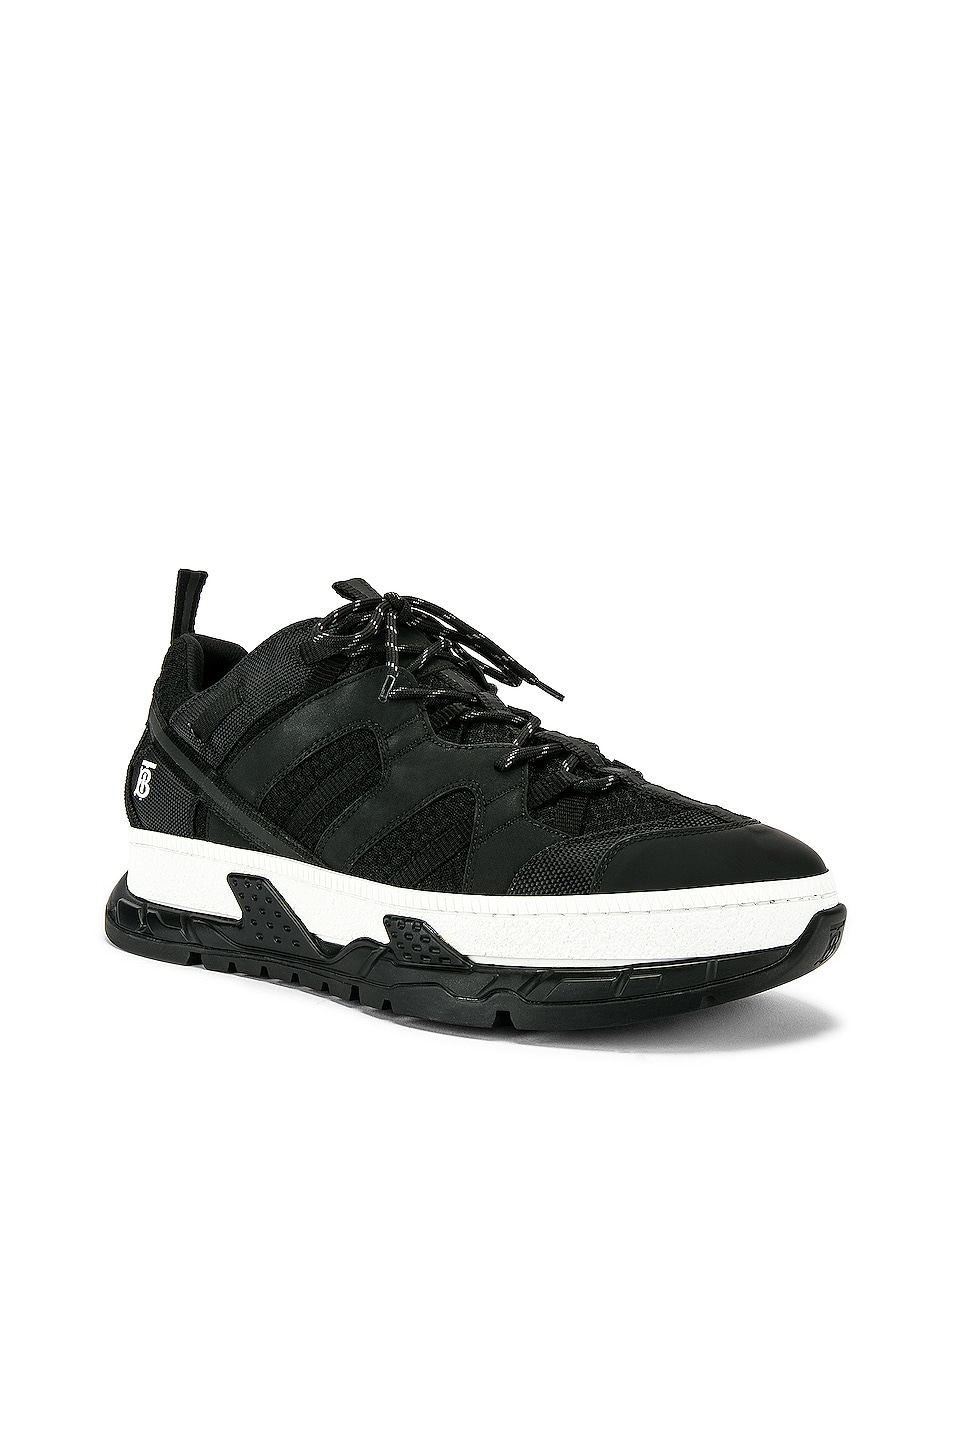 Image 1 of Burberry RS5 Low C Sneaker in Black